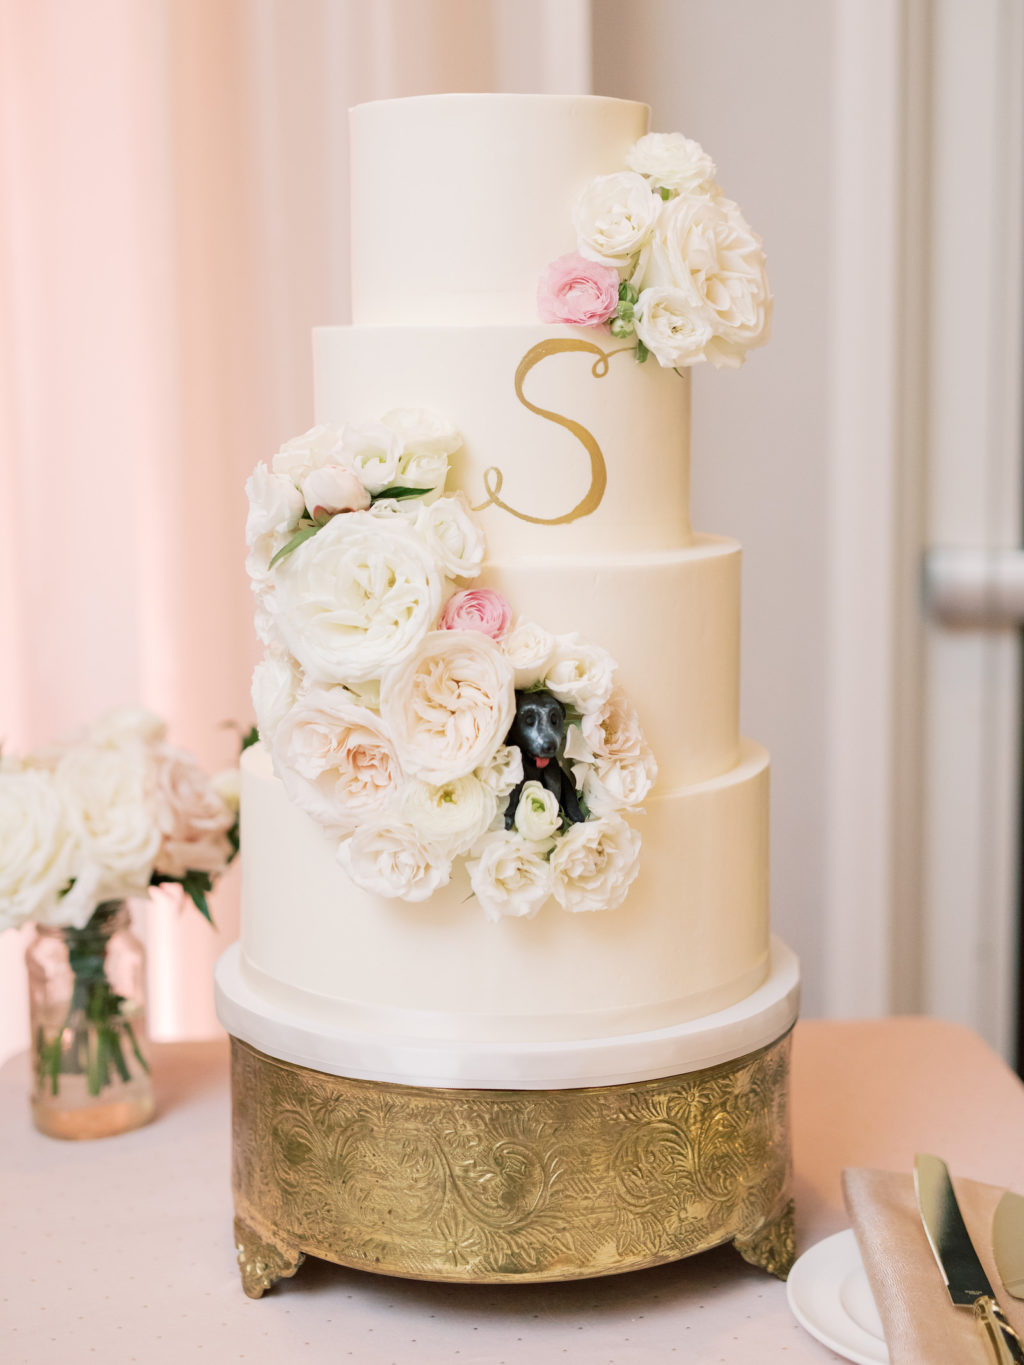 Classic Four Tier White Wedding Cake with Gold Painted Initial and Cascading Blush Pink and Ivory Roses with Unique Dog Figurine Popping Out of Middle Tier Wedding Cake | Tampa Bay Wedding Baker The Artistic Whisk